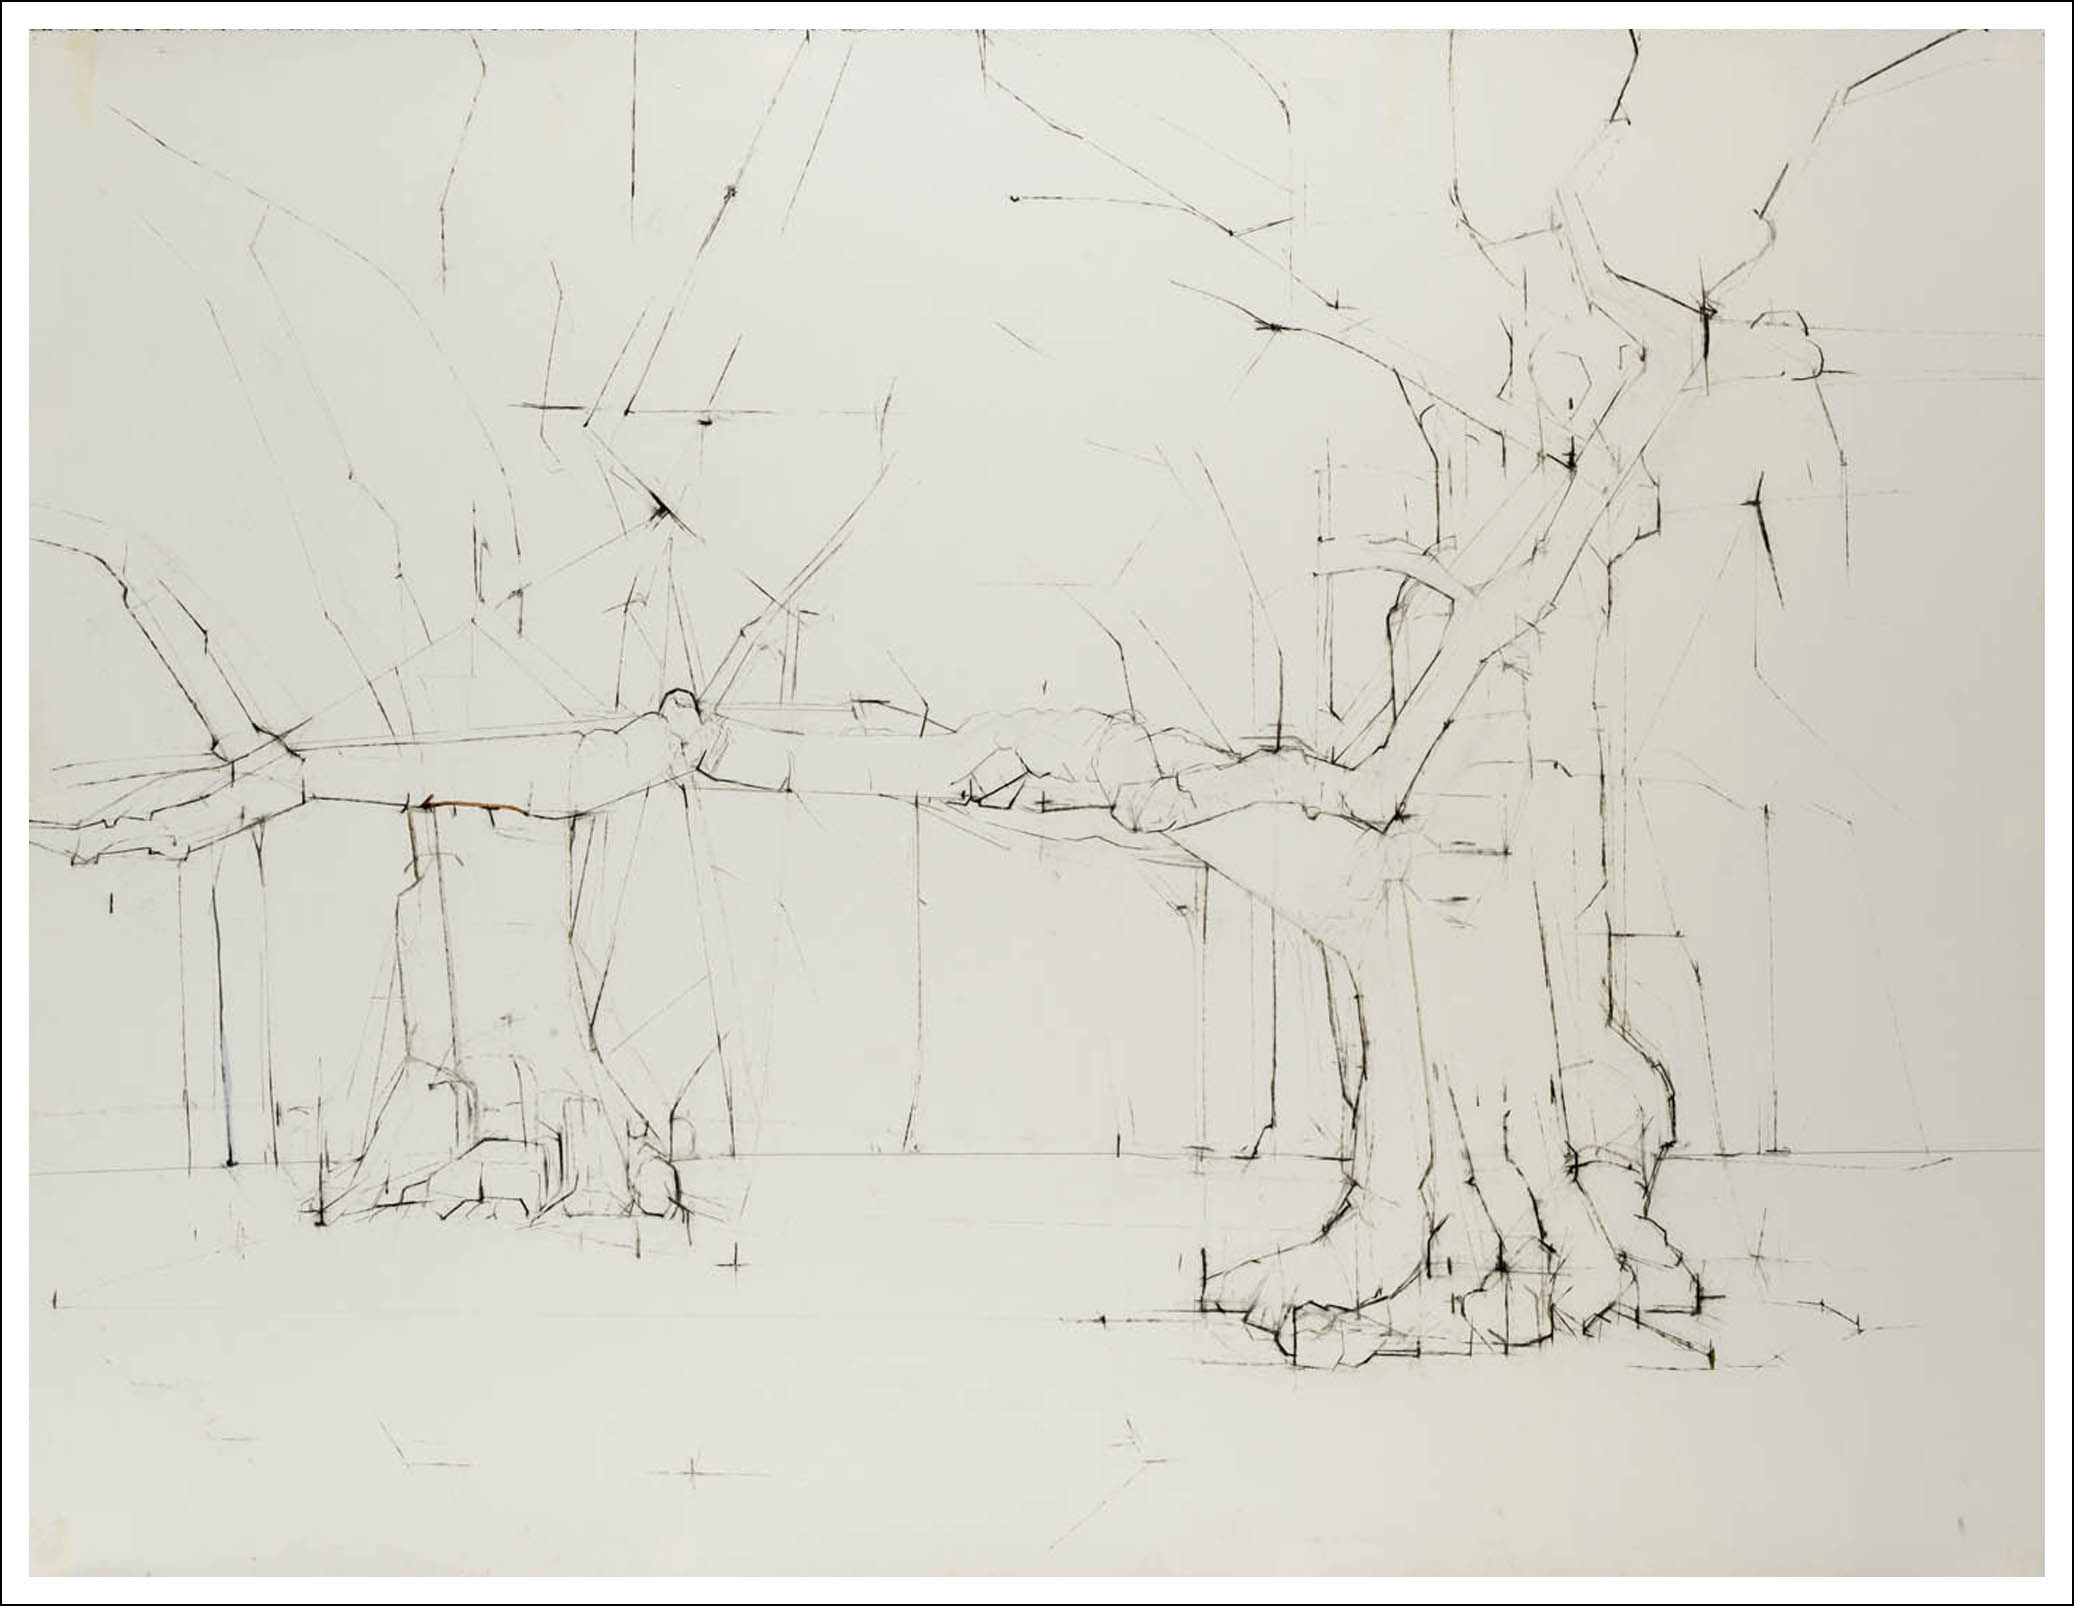 """Quercus Rubra L. 344° 40° 47' 21.1"""" N 73° 57' 34.6"""" W , 2009, Charcoal, pencil on paper (38.25 inchesx 50 inches)"""